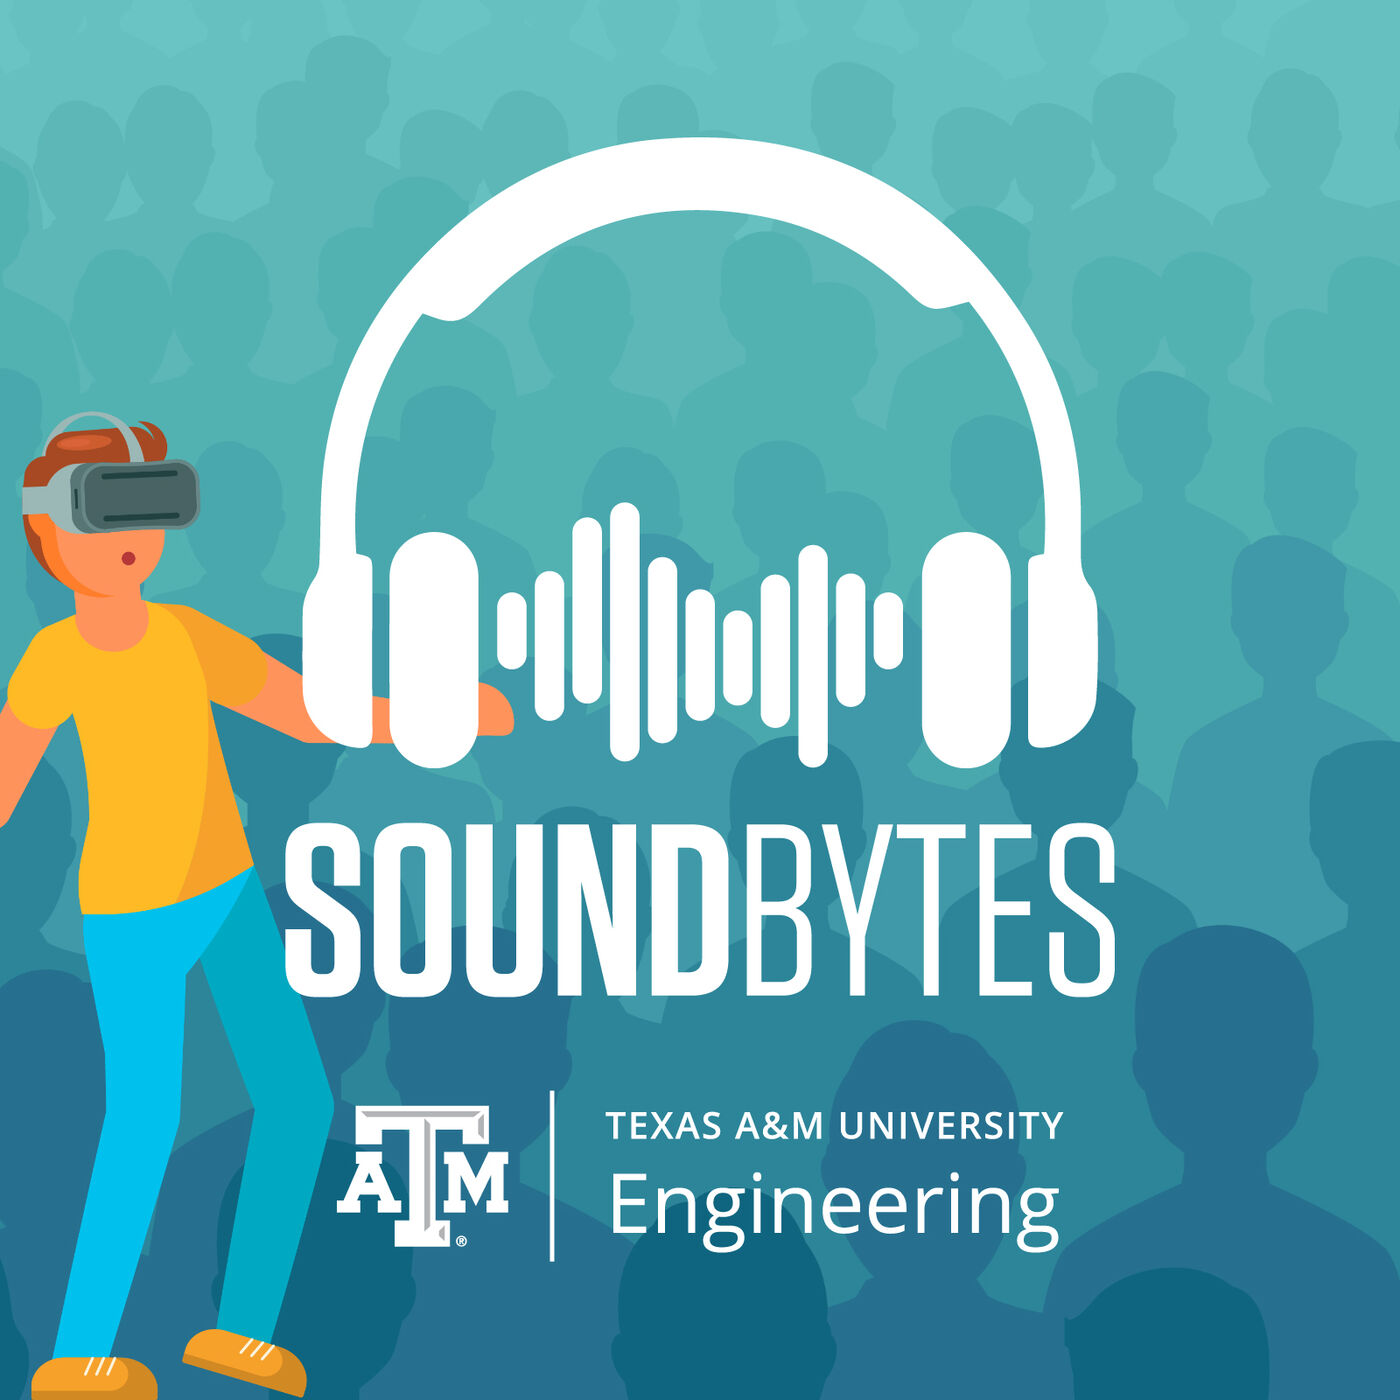 Engineer This!: Can VR reduce fear of public speaking (Featuring Dr. Theodora Chaspari)